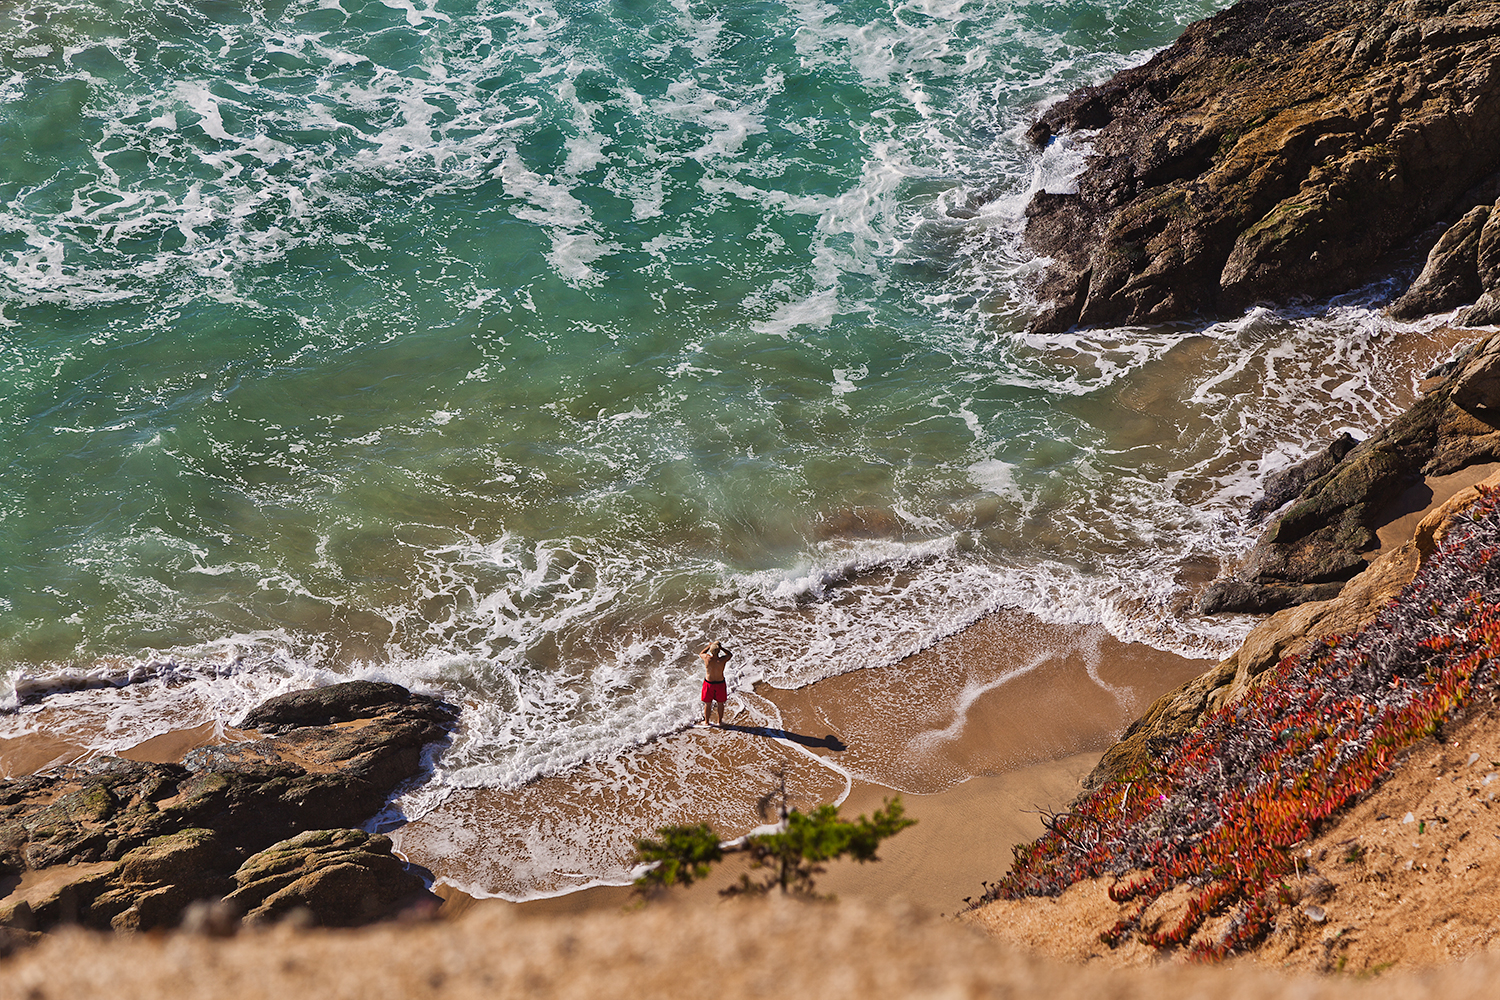 pacific coast highway aerial photographer california state route one photography.jpg